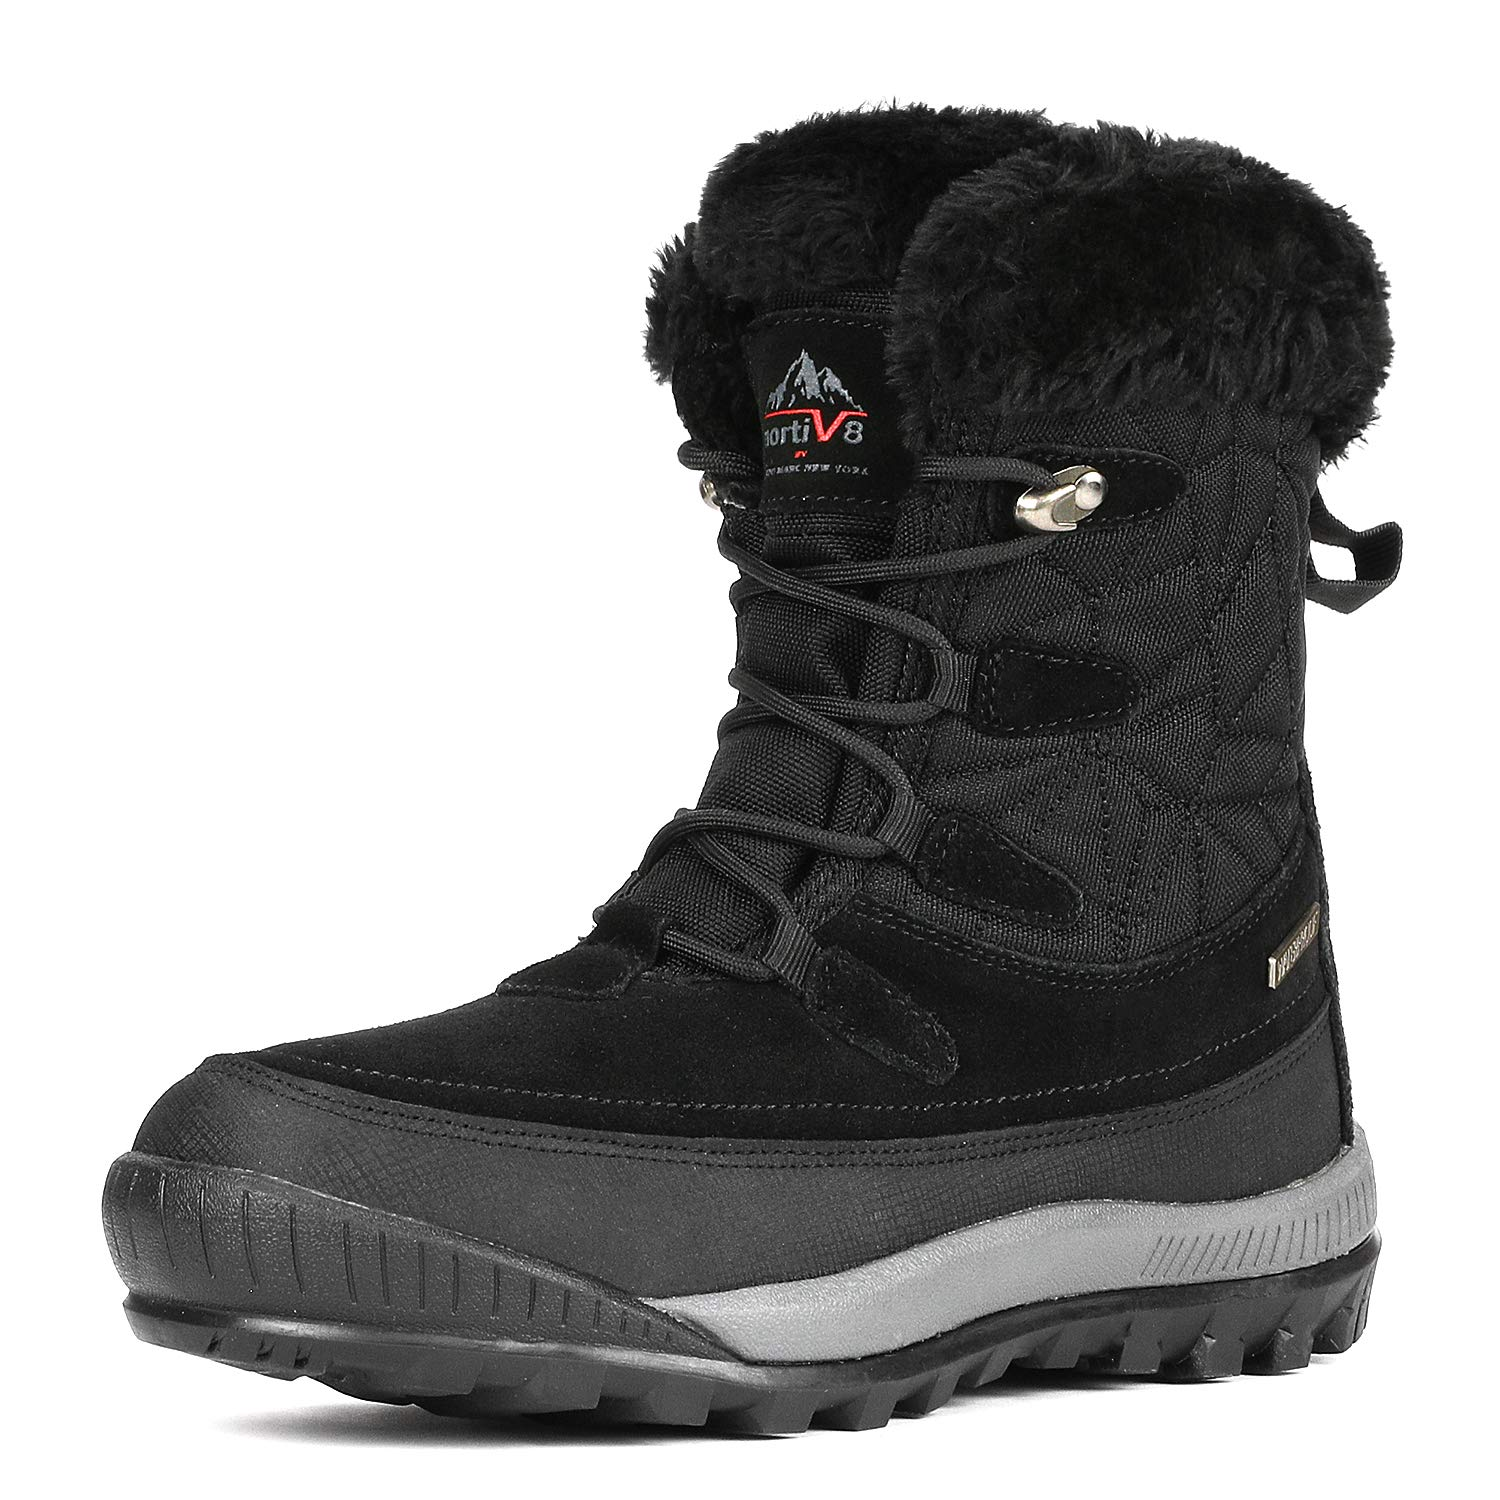 NORTIV 8 Women\'s A0052 Insulated Waterproof Construction Hiking Winter Snow Boots